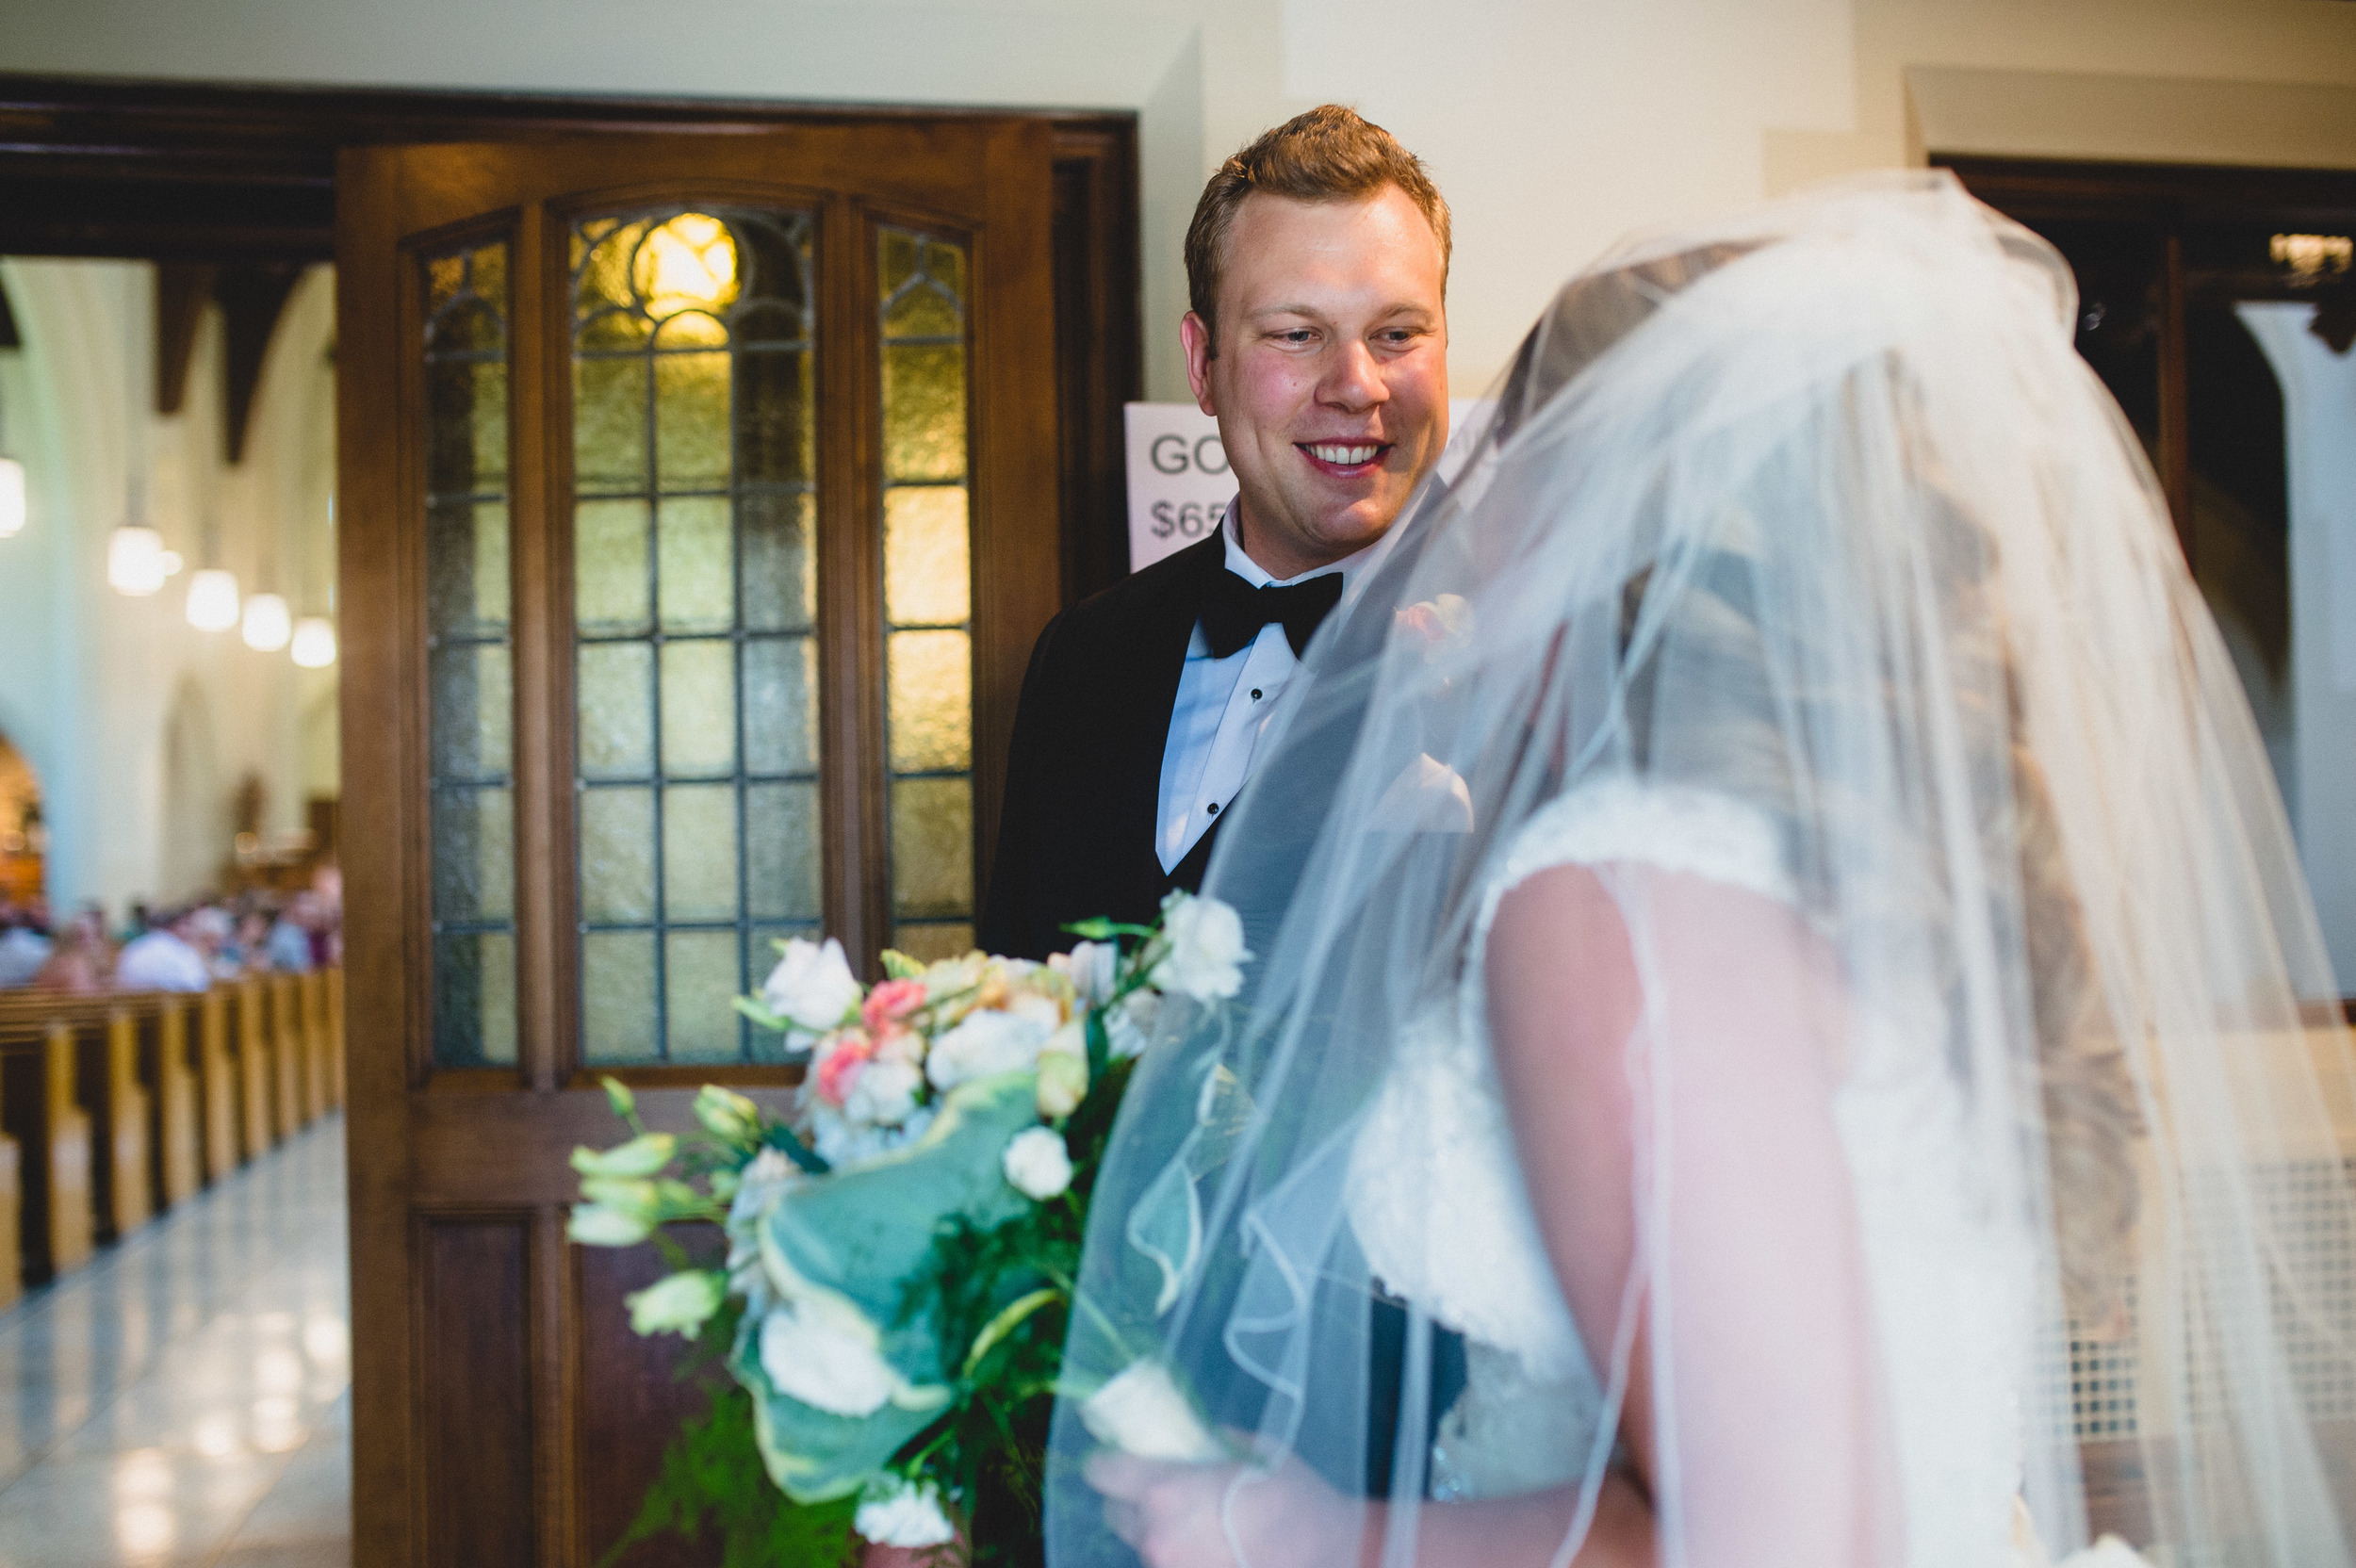 Vancouver St Augustine 's Church wedding photographer edward lai photography-31.jpg